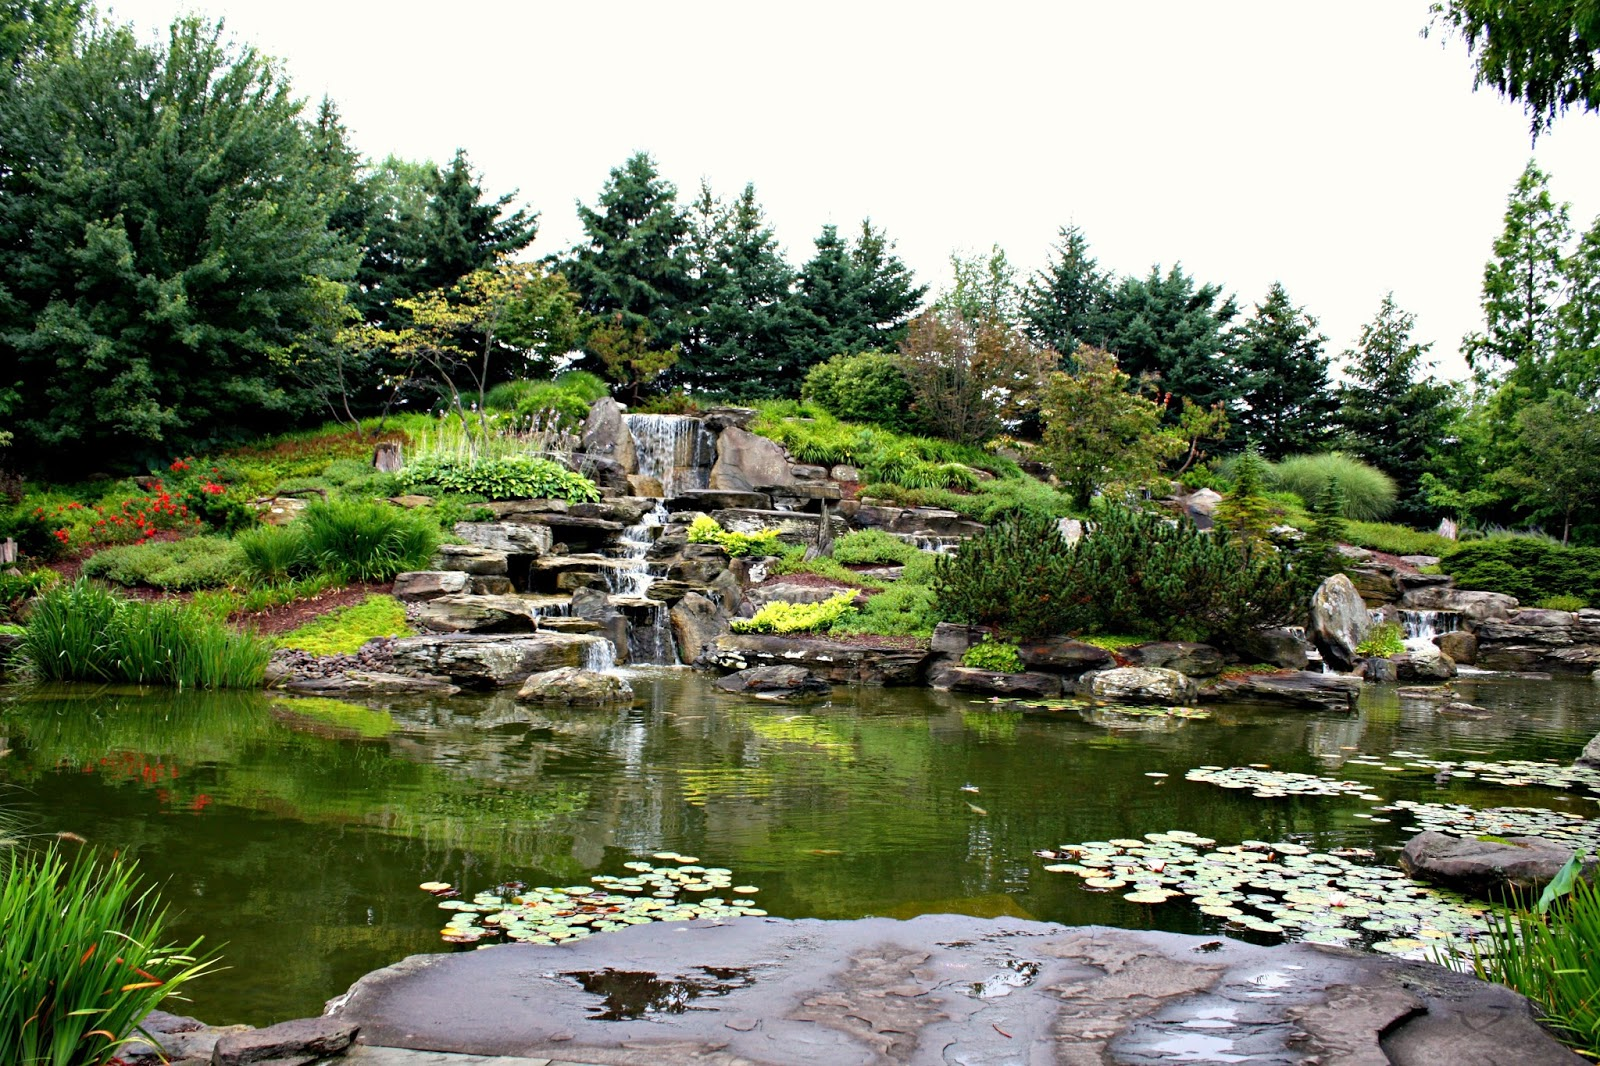 A little time and a keyboard capturing serenity at Frederik meijer gardens